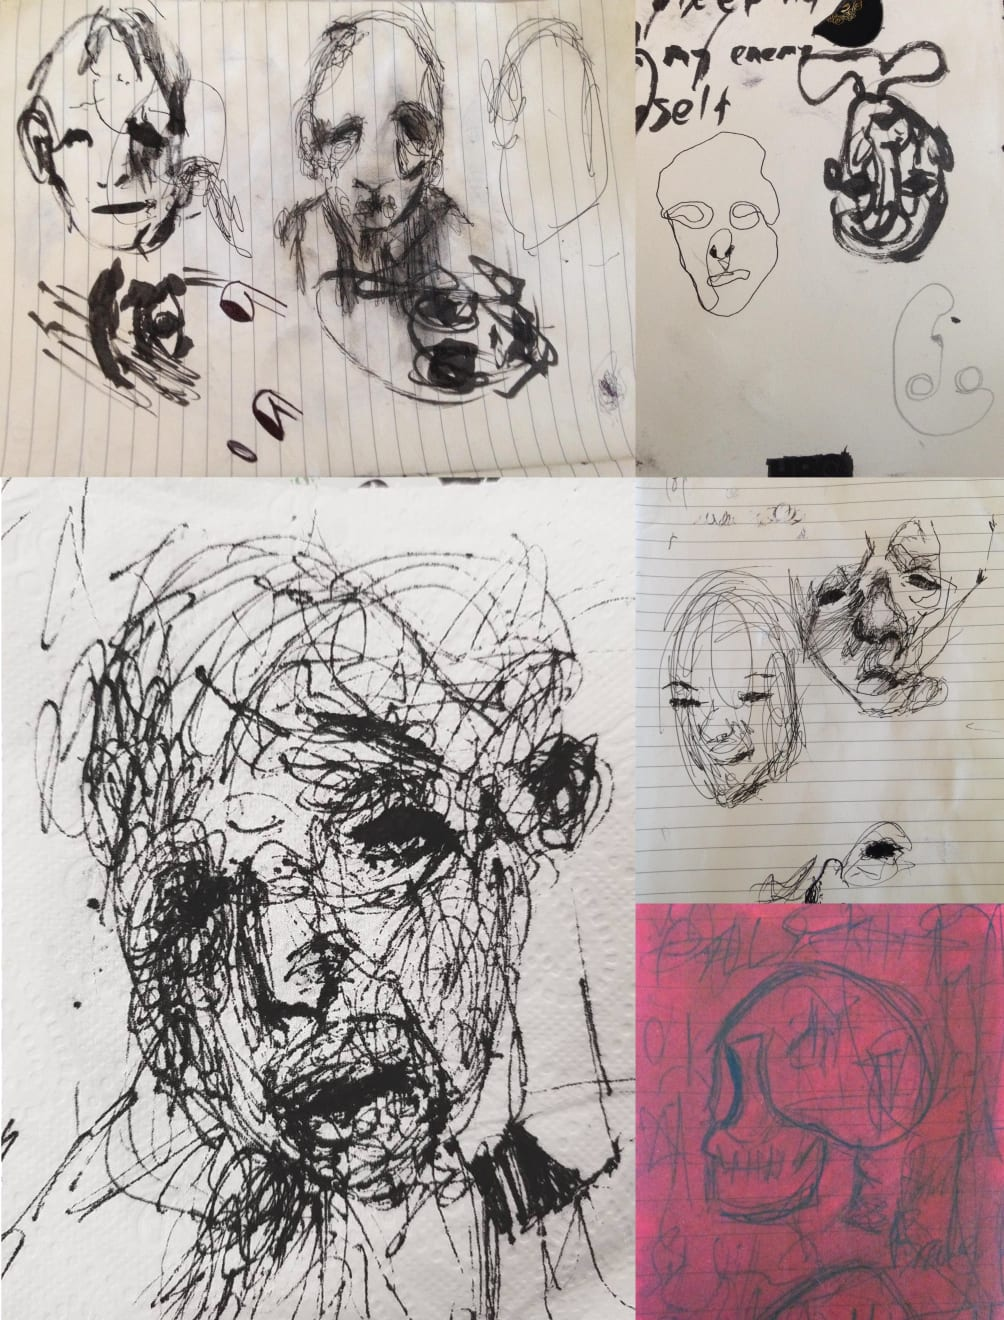 2010-2013│Scribbling these faces is where it all began. As a teenager, I was homeless and struggling with violent panic attacks. Out of desperation one day I grabbed a pen and started frantically scribbling. This became one of the only things that would distract me enough to stop a panic attack.